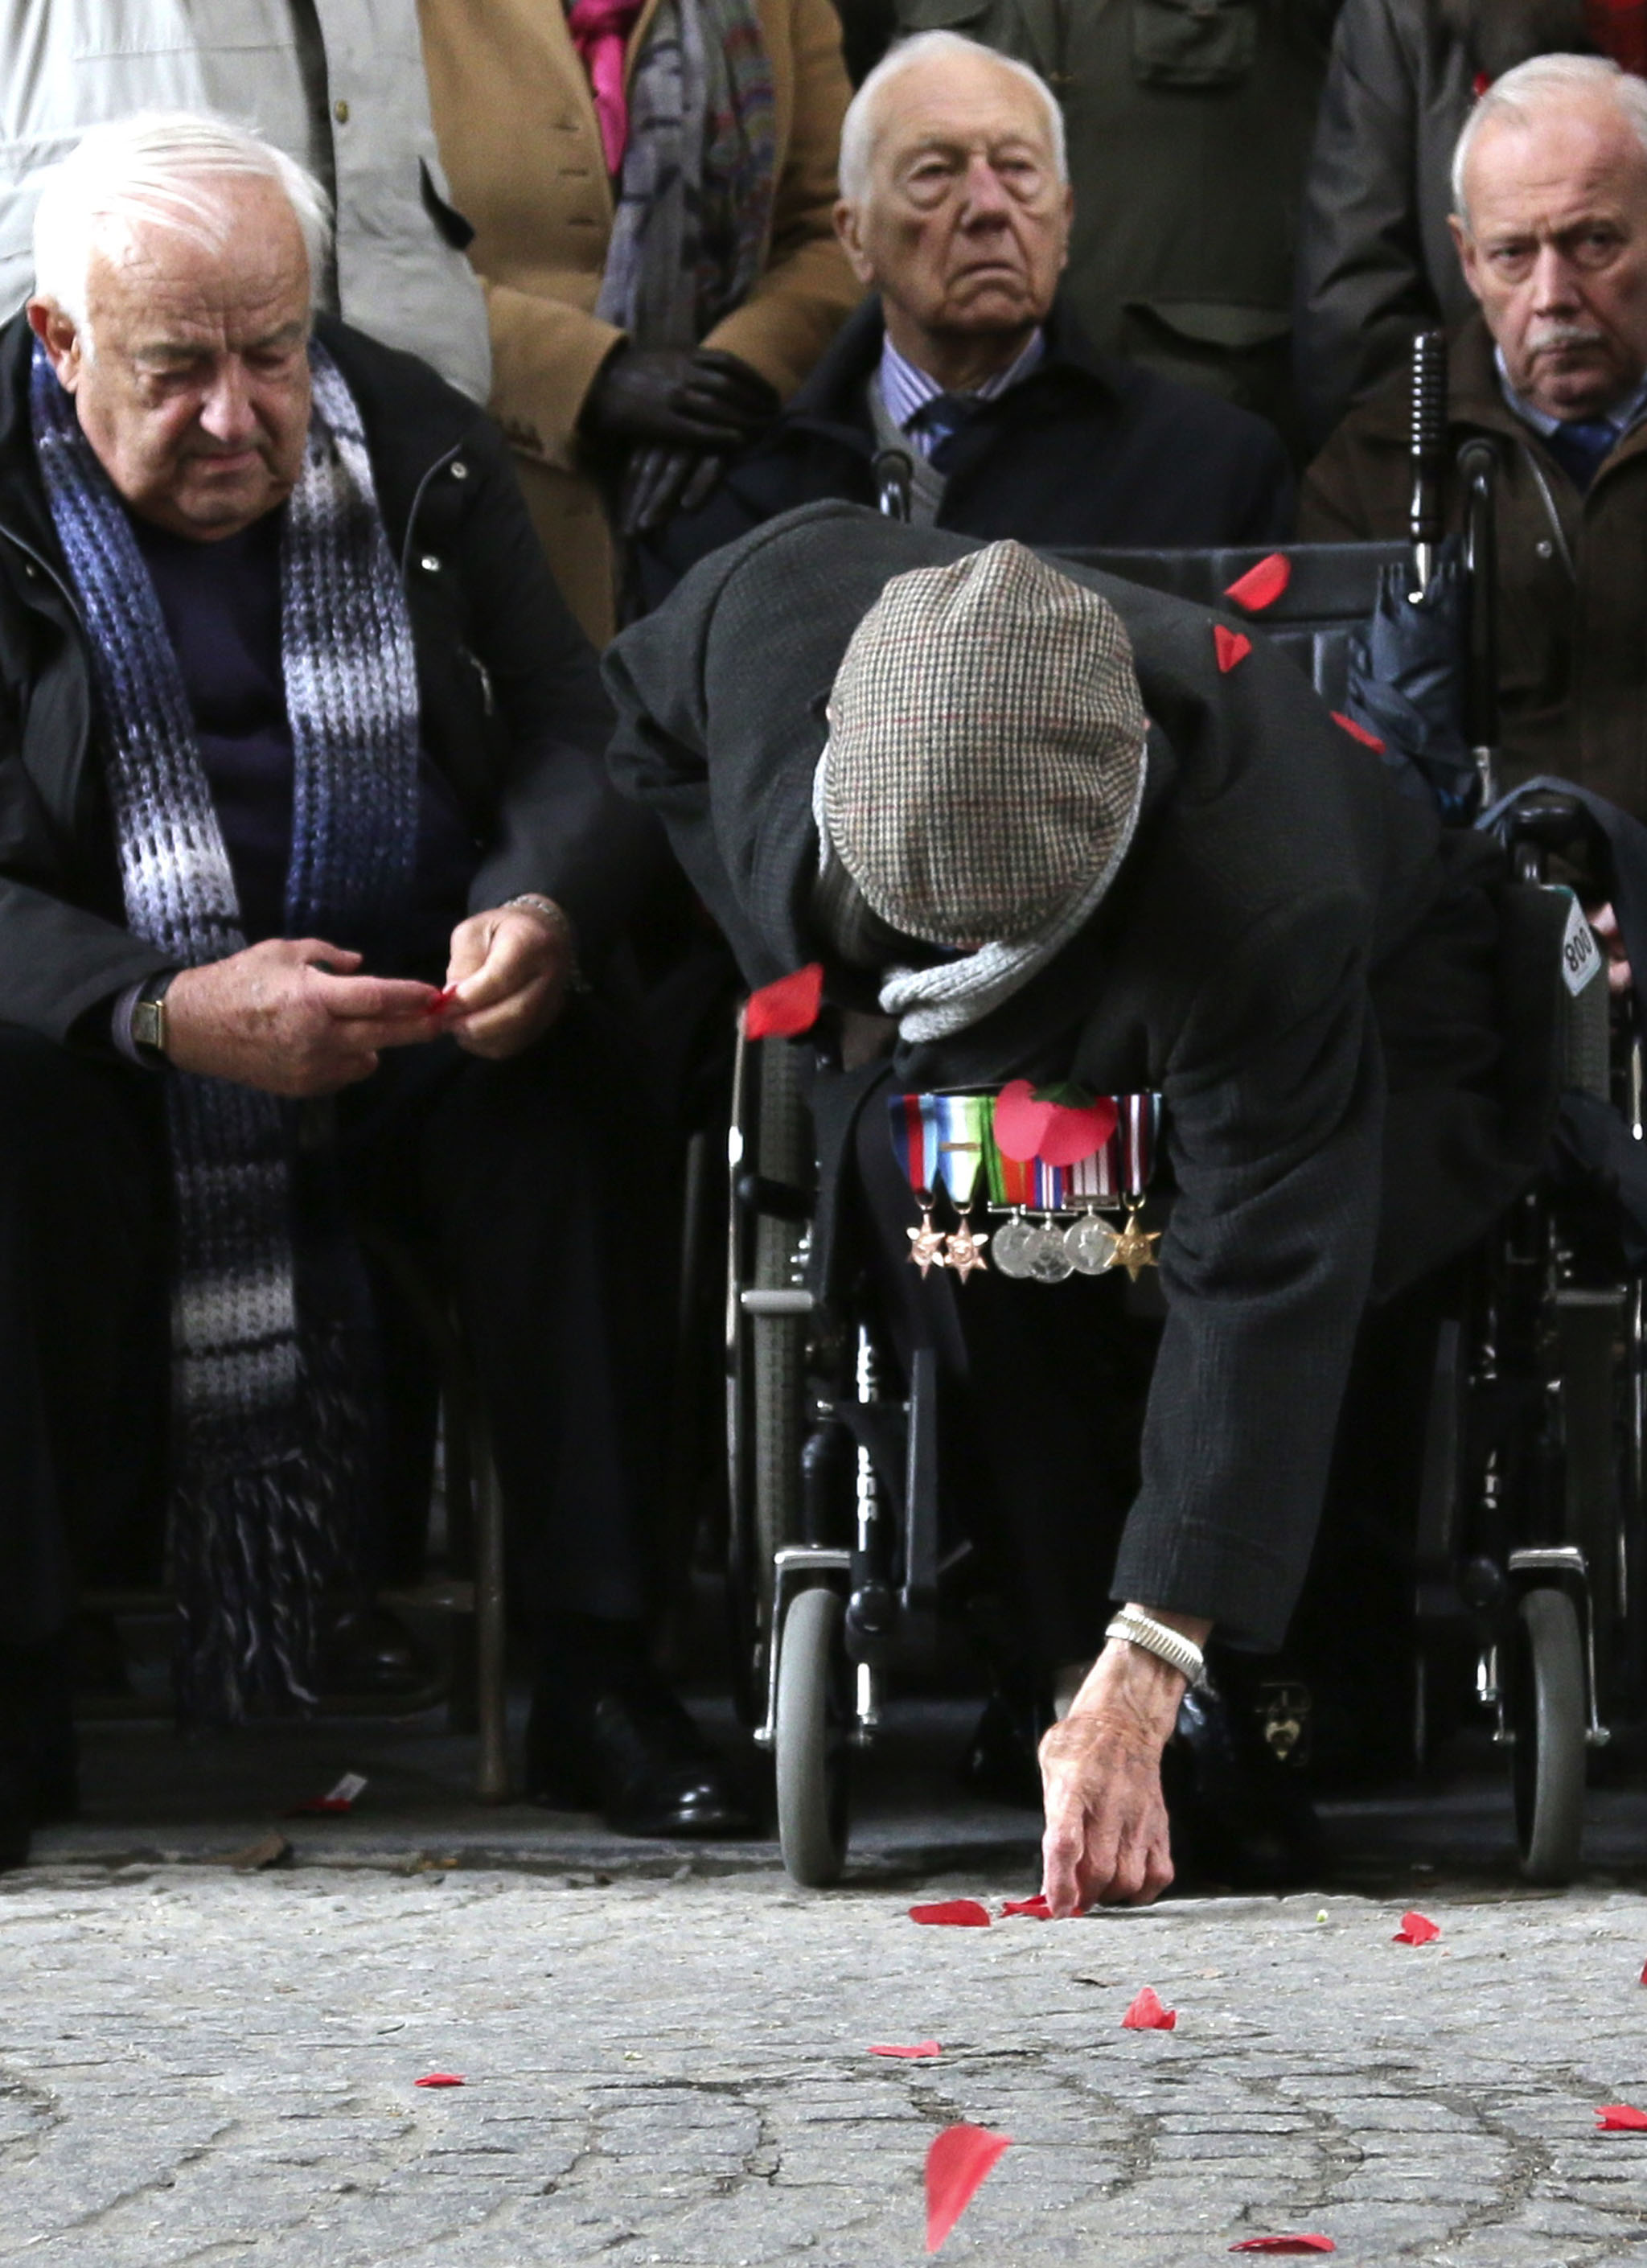 World War Two veteran Harry Marrington, from Portsmouth, England, leans down to pick up a paper poppy during an Armistice Day ceremony under the Menin Gate in Ypres, Belgium. The Menin Gate Memorial bears the names of more than 54,000 British and Commonwealth soldiers who were killed in the Ypres Salient of World War I and whose graves are not known.